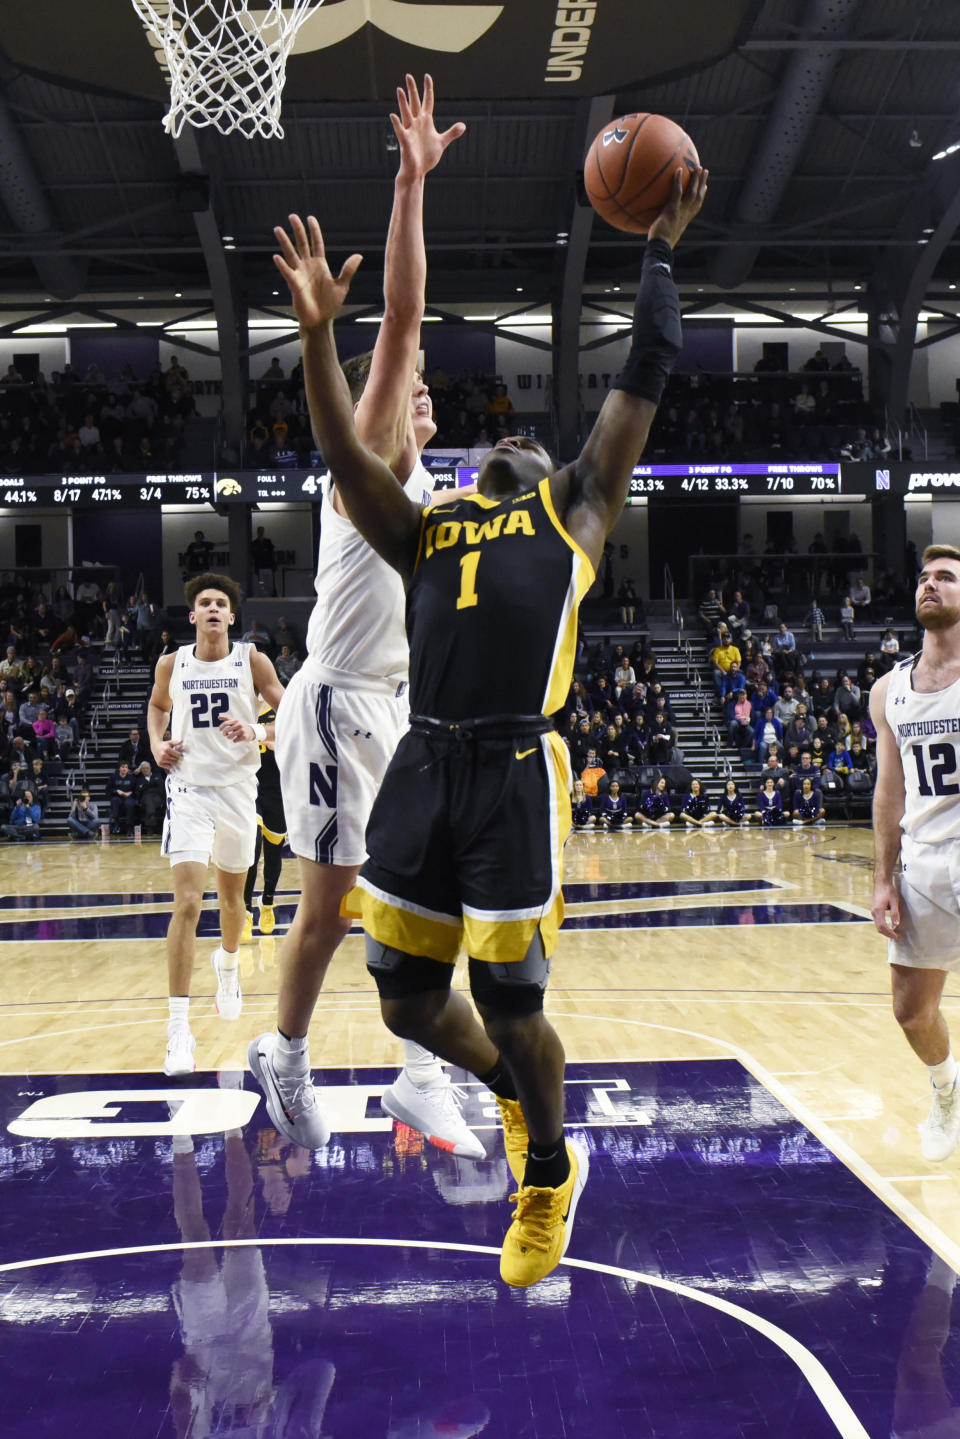 Iowa guard Joe Toussaint (1) goes to the basket as Northwestern center Ryan Young (15) defends during the second half of an NCAA college basketball game Tuesday, Jan. 14, 2020, in Evanston, Ill. (AP Photo/David Banks)